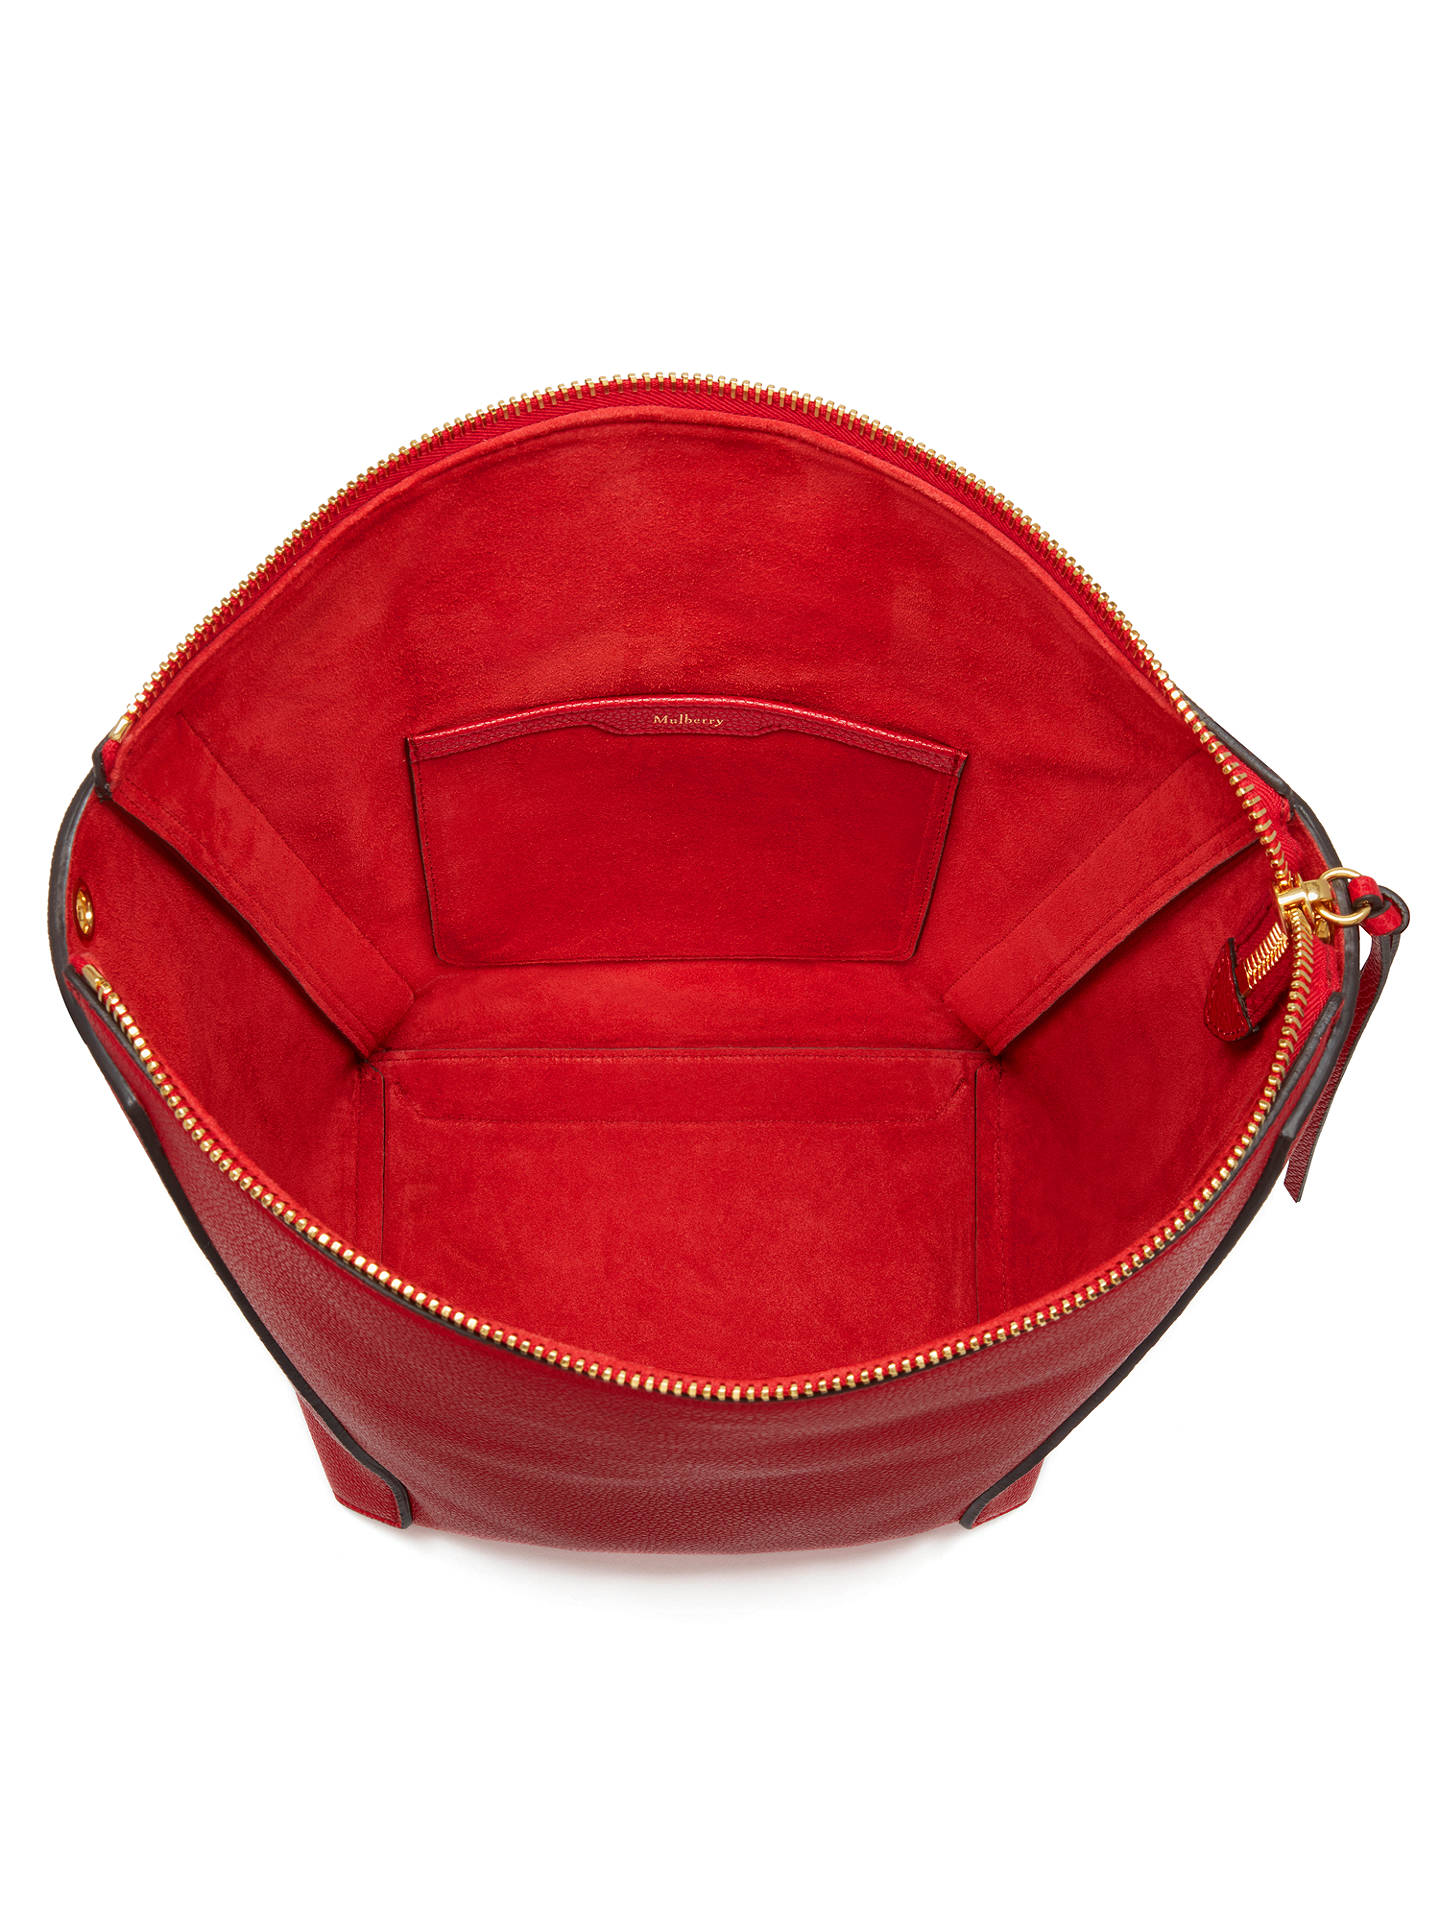 Mulberry Camden Classic Grain Leather Hobo Bag at John Lewis   Partners 5b21a22b3492d